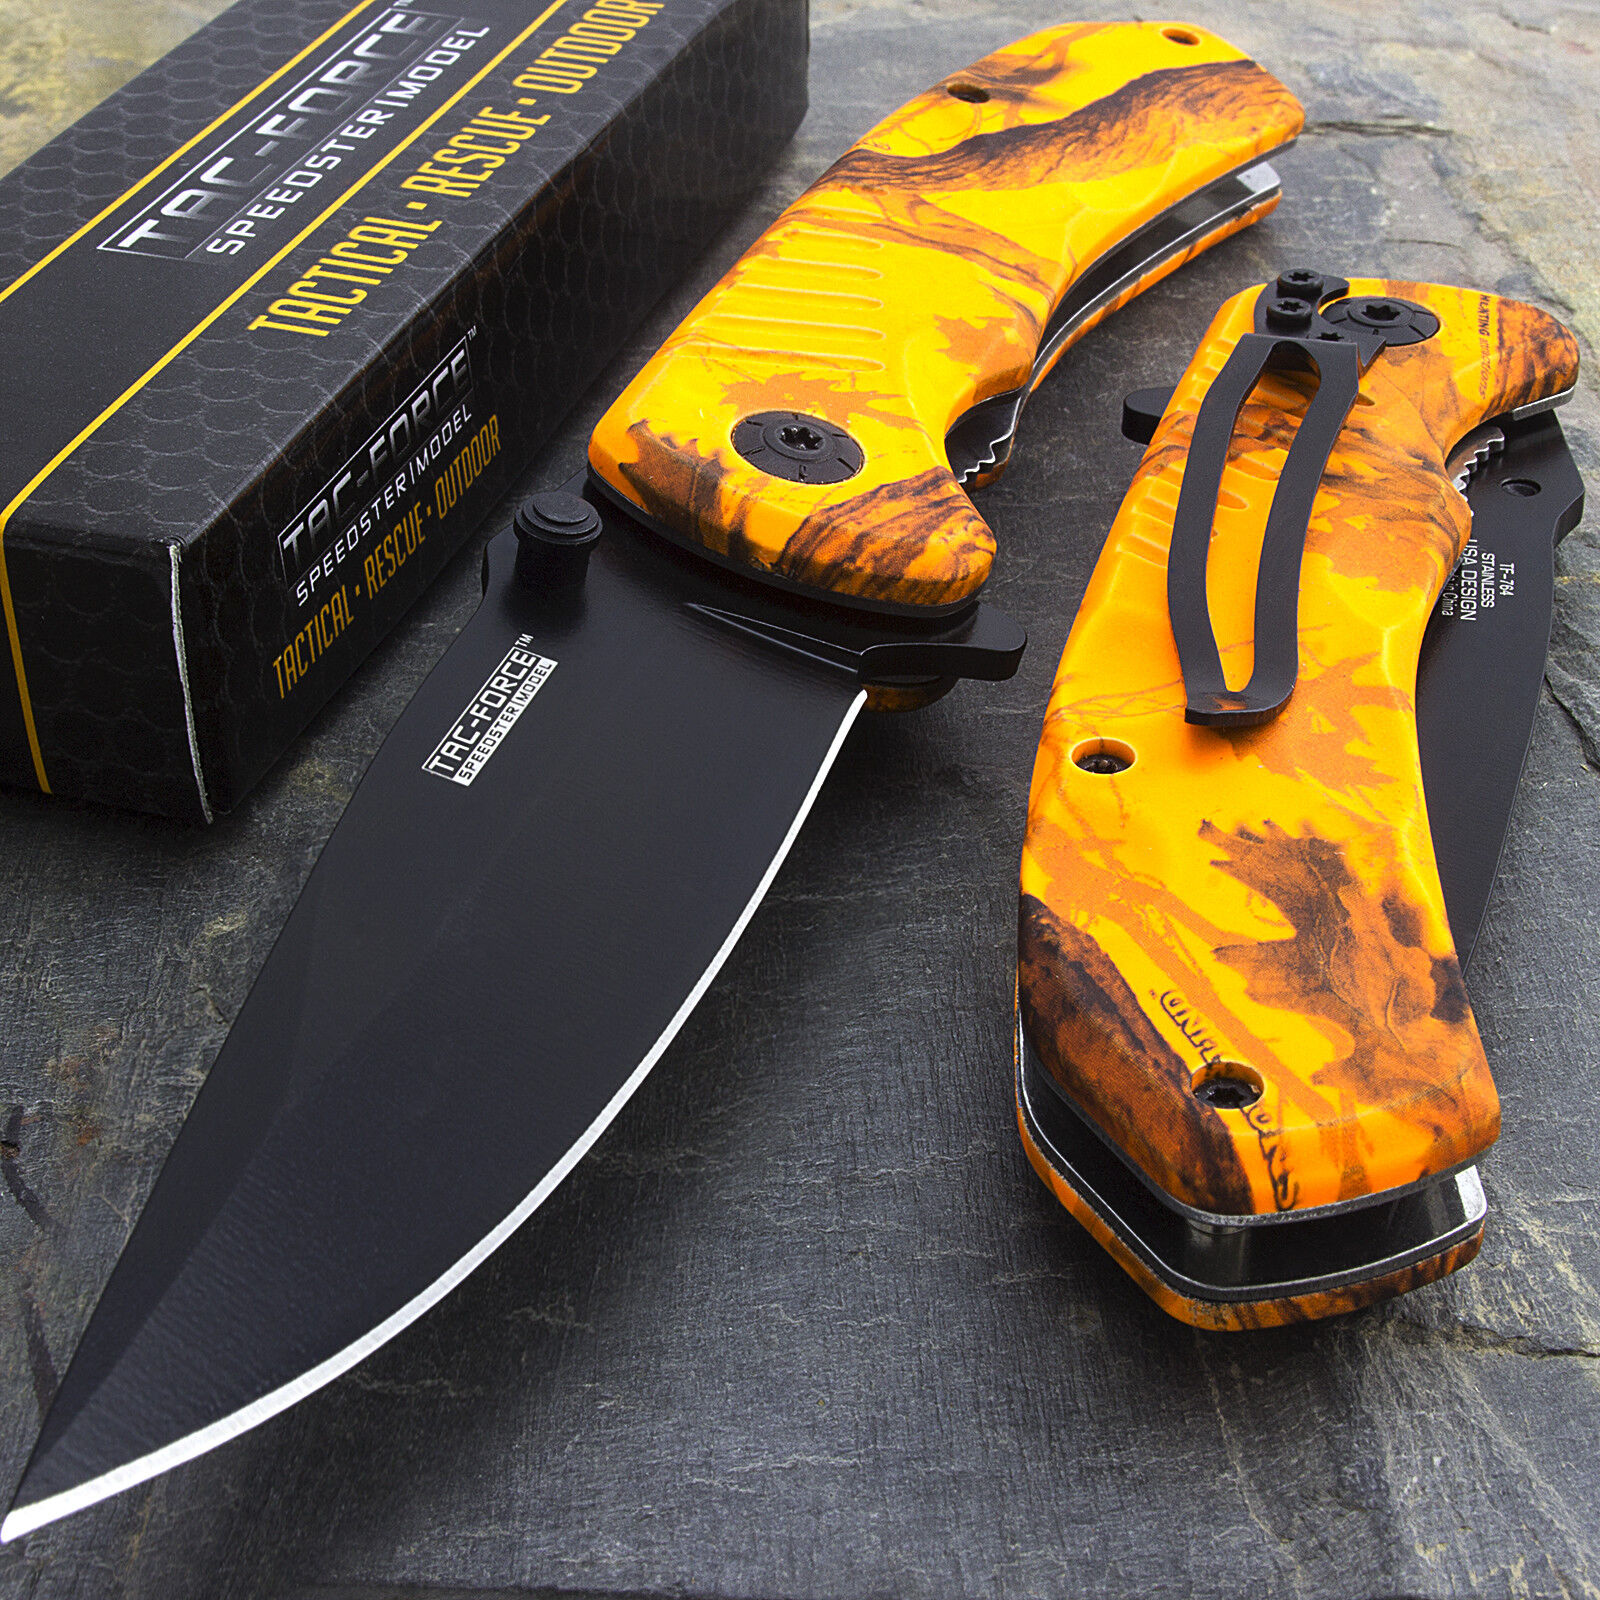 Купить Tac-Force - 8 TAC FORCE EDC ORANGE CAMO SPRING ASSISTED TACTICAL POCKET KNIFE Blade Assist